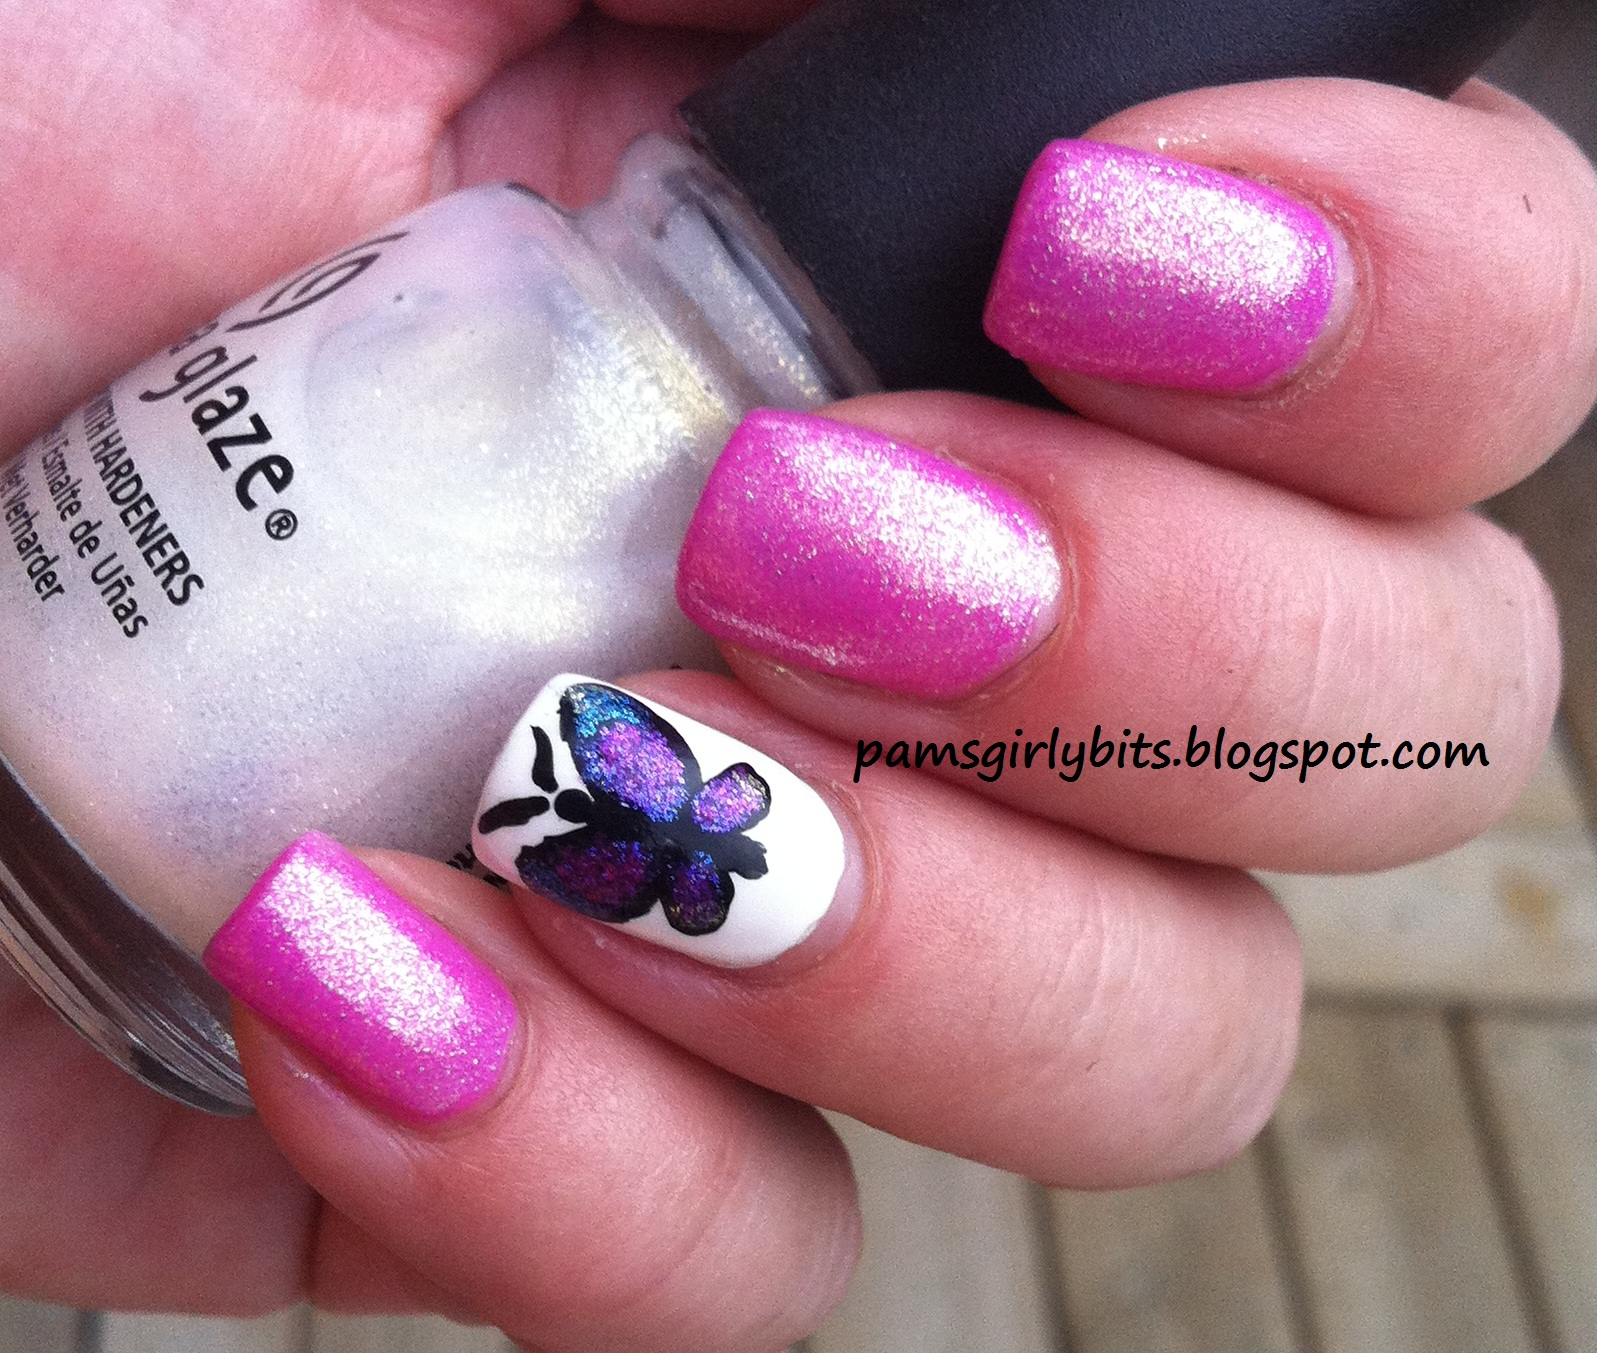 Girly Nail Art: Girly Bits: Butterfly Nail Art